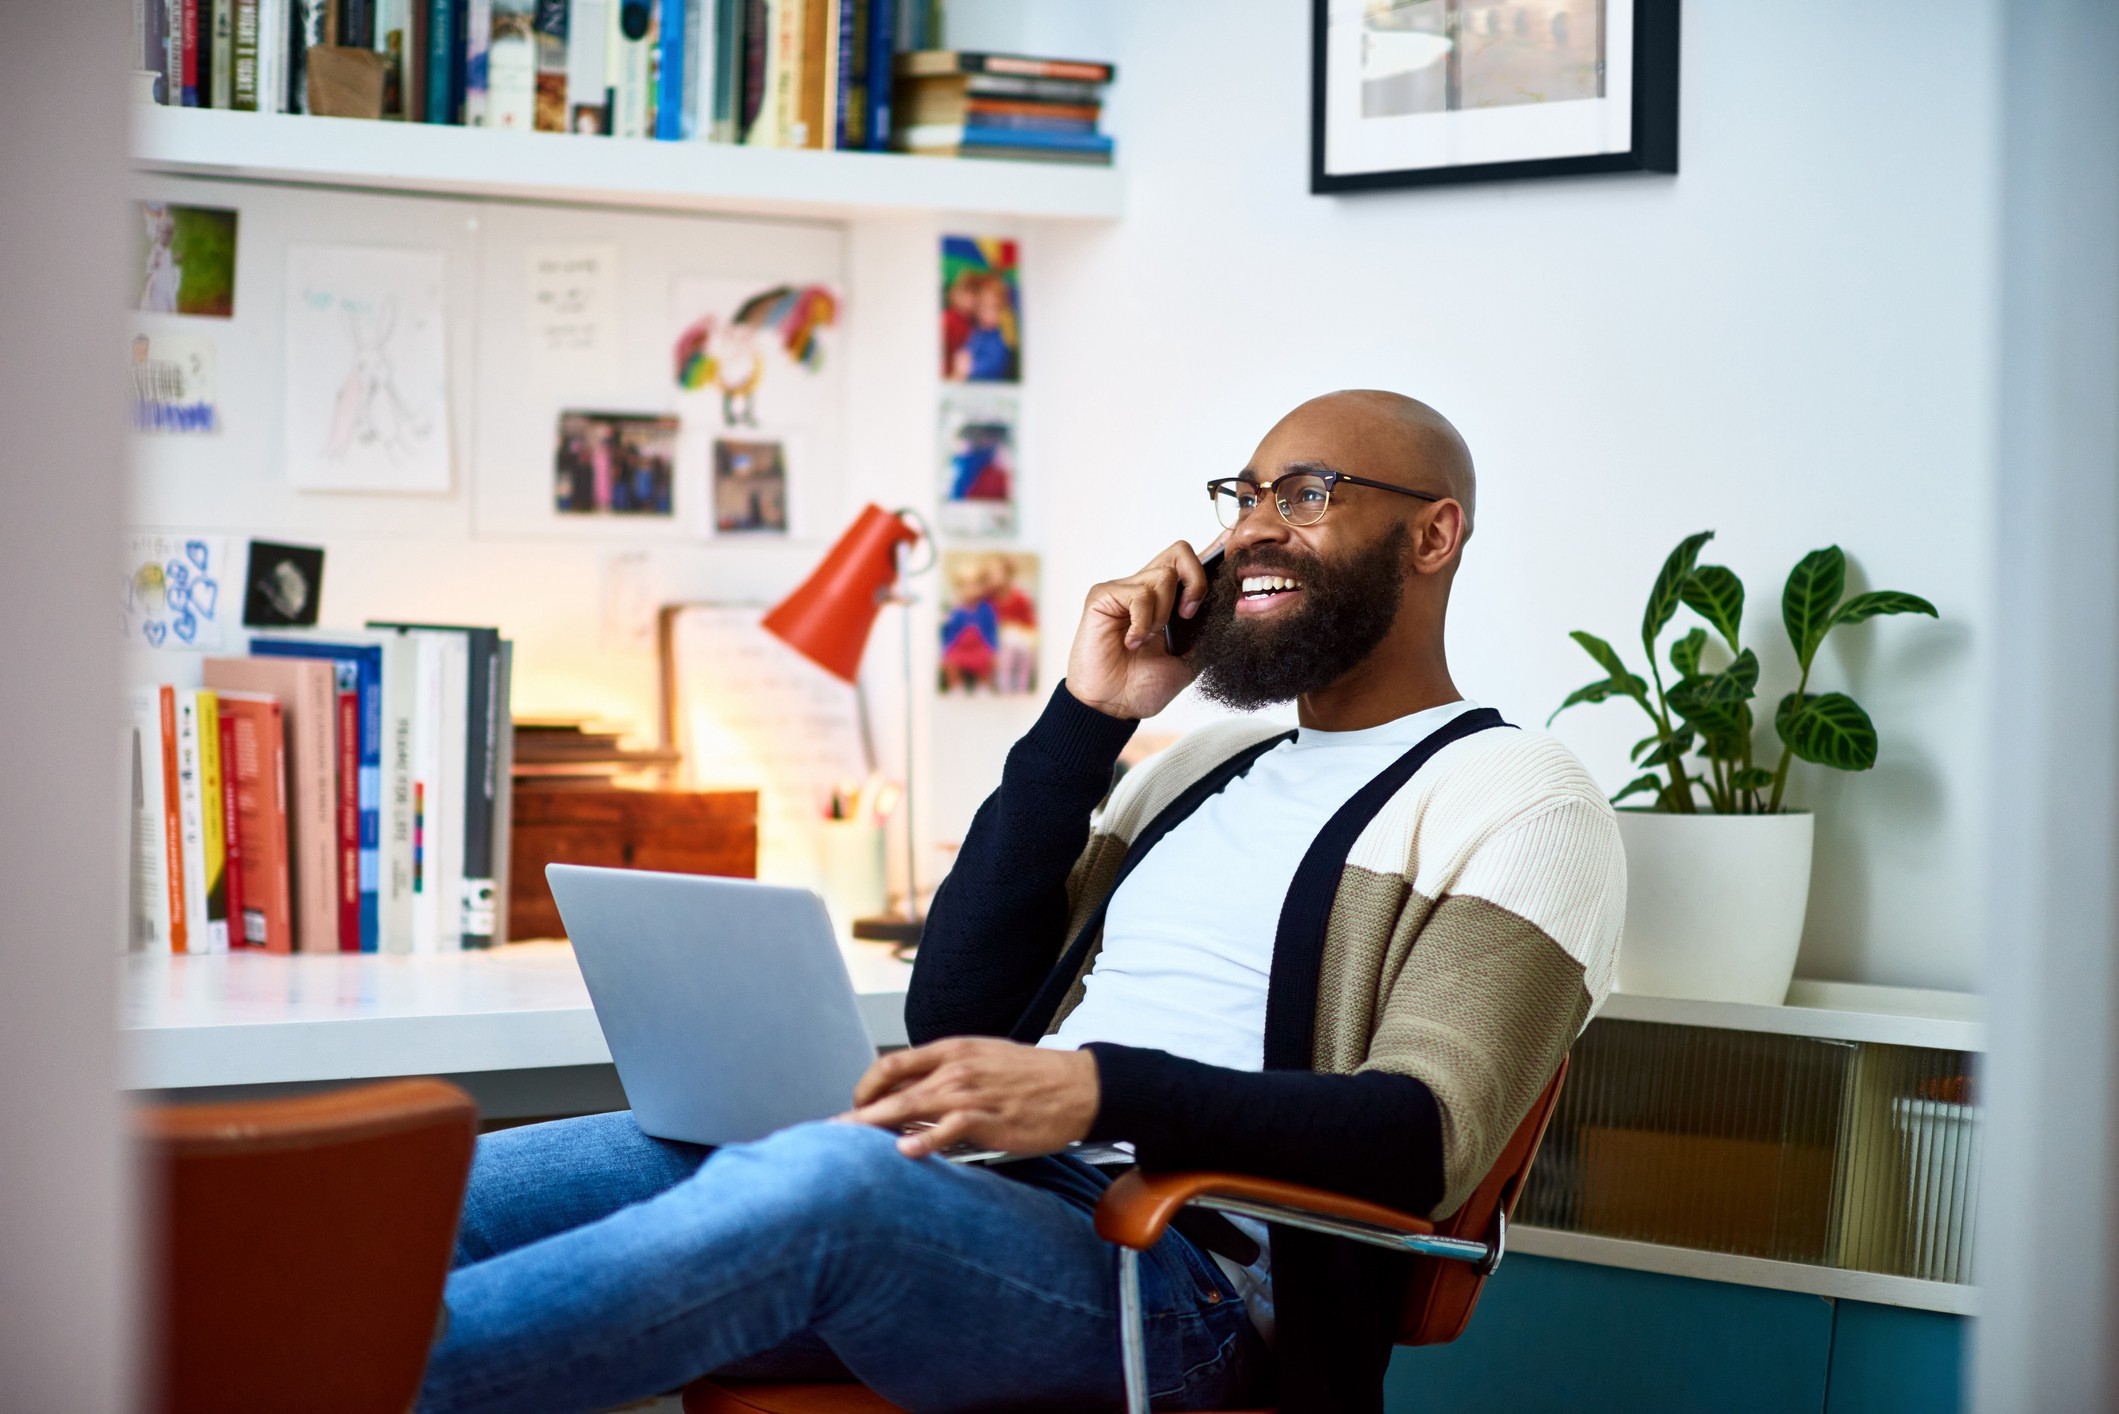 Man smiling as he talks on the phone with someone.